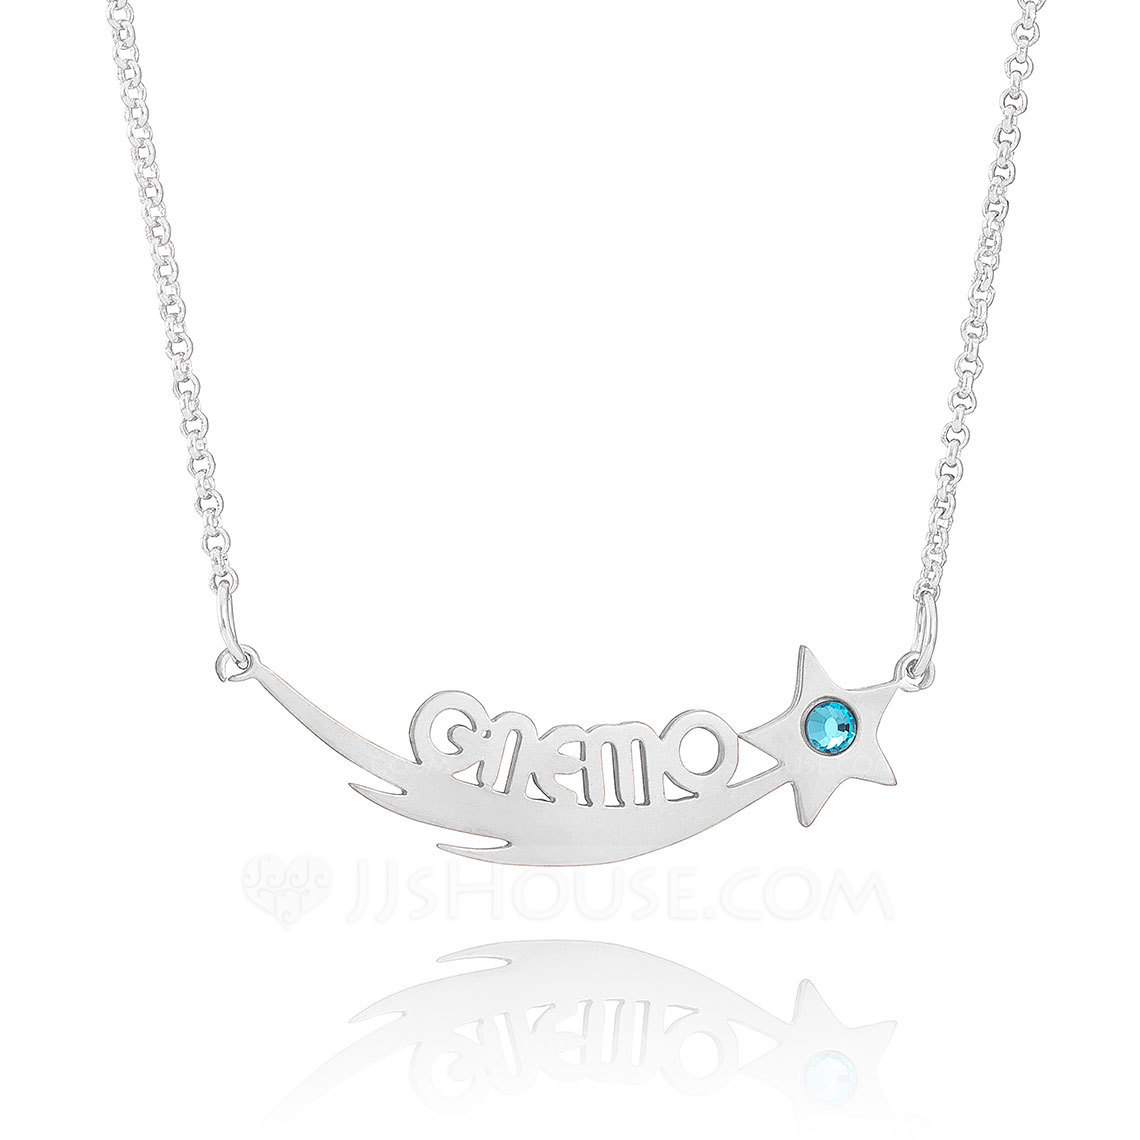 Custom Sterling Silver Name Birthstone Necklace Nameplate With Kids Names - Christmas Gifts